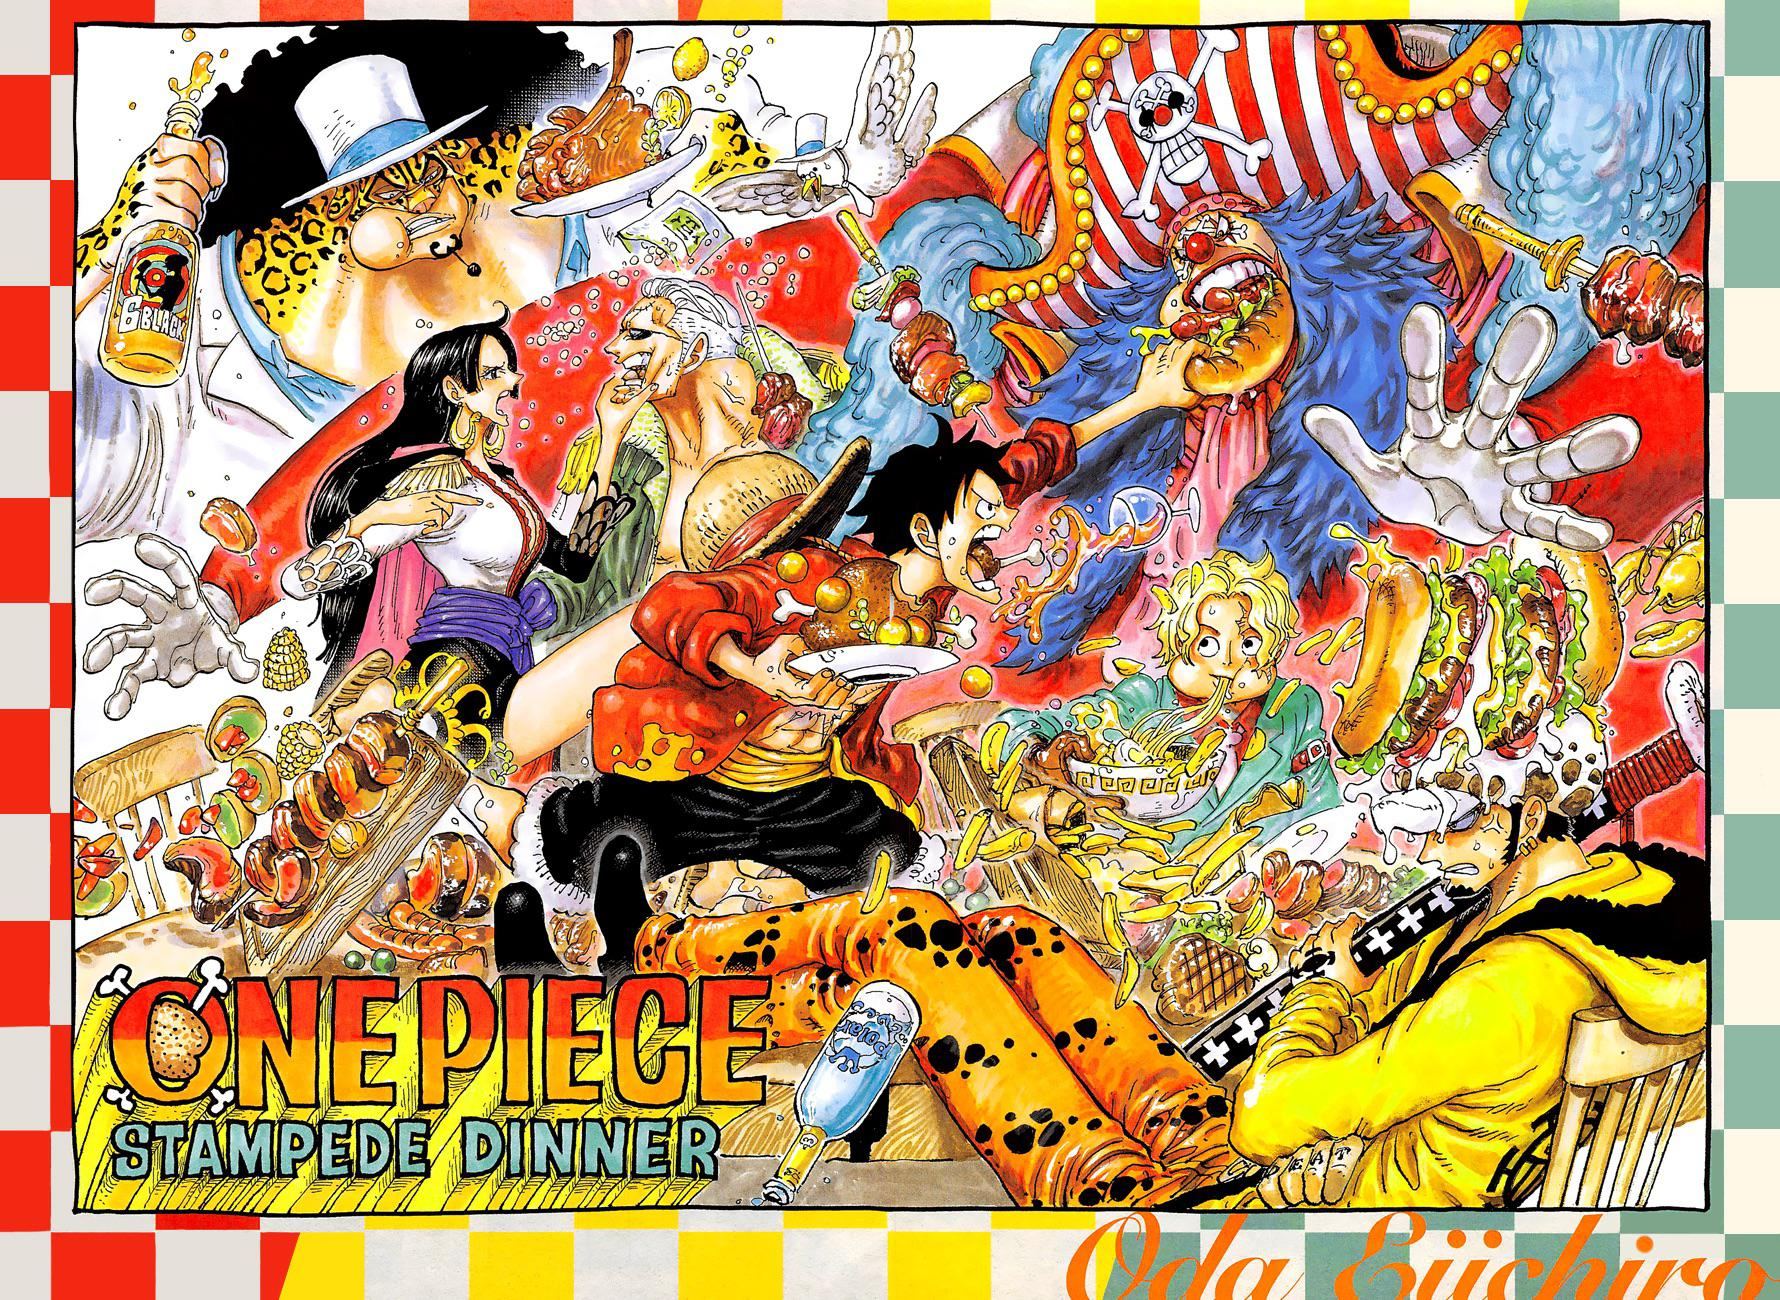 One Piece Stampede Phone Wallpaper ...